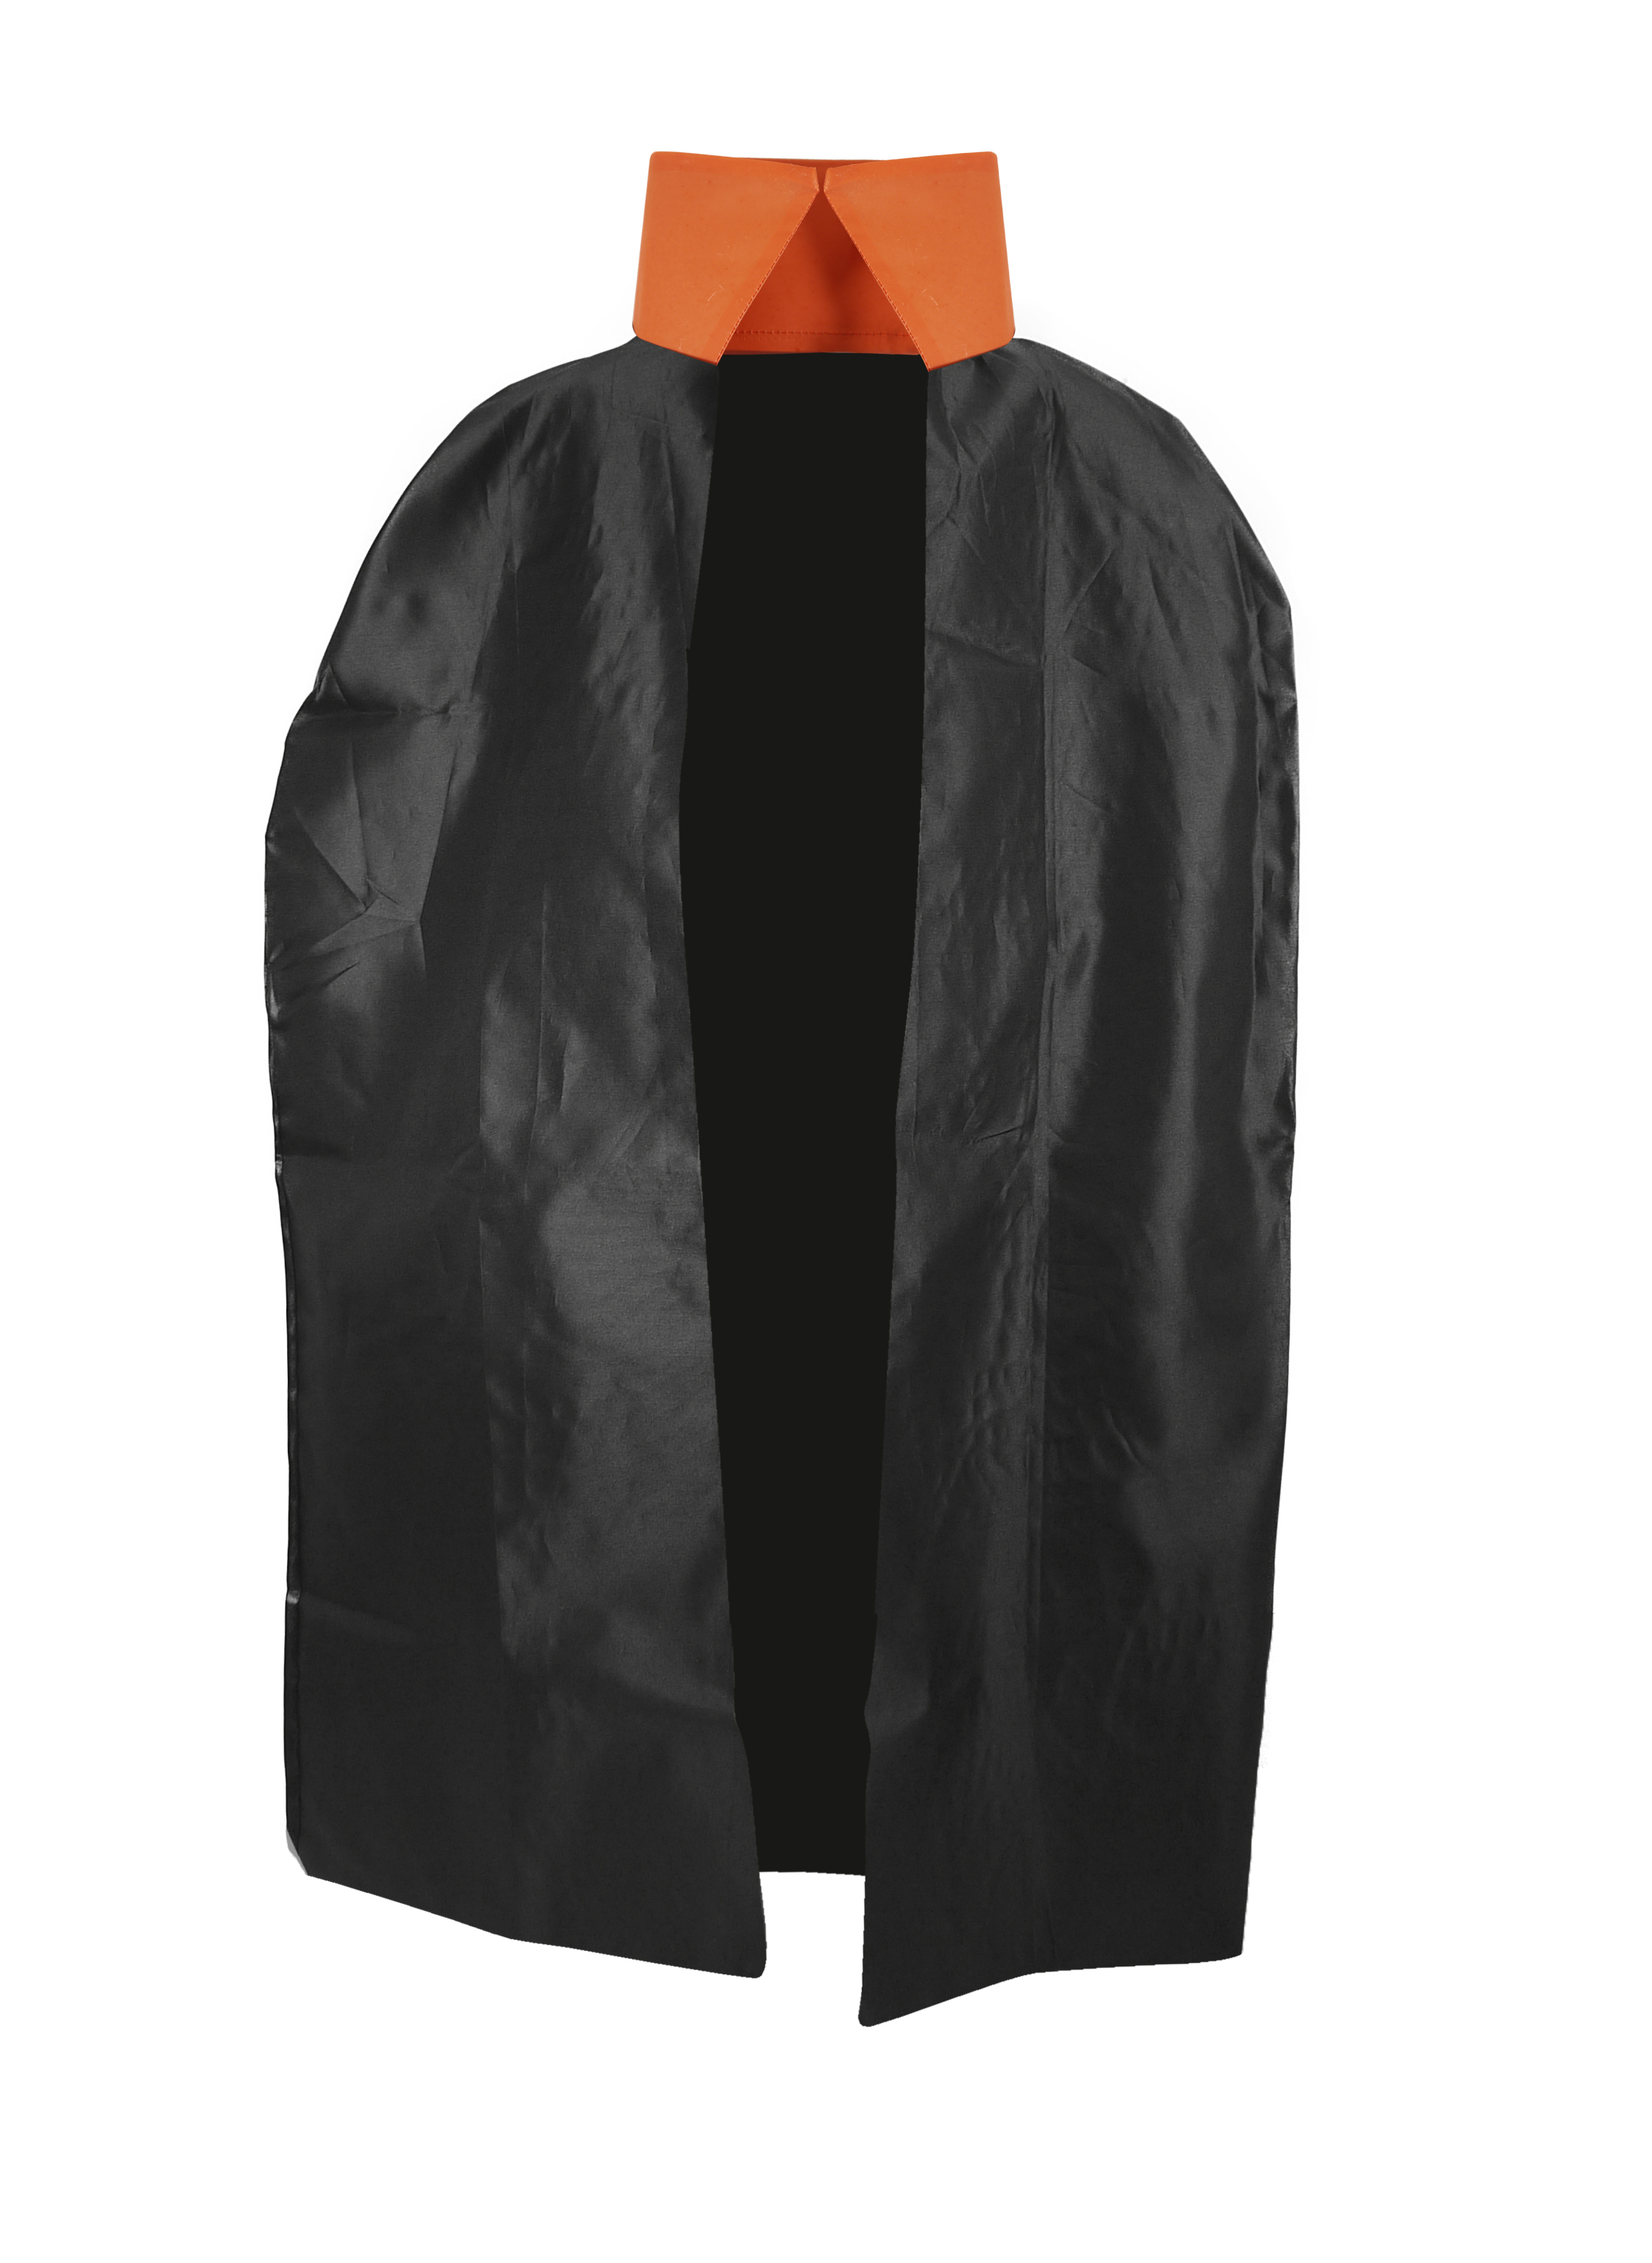 Children Halloween Cape